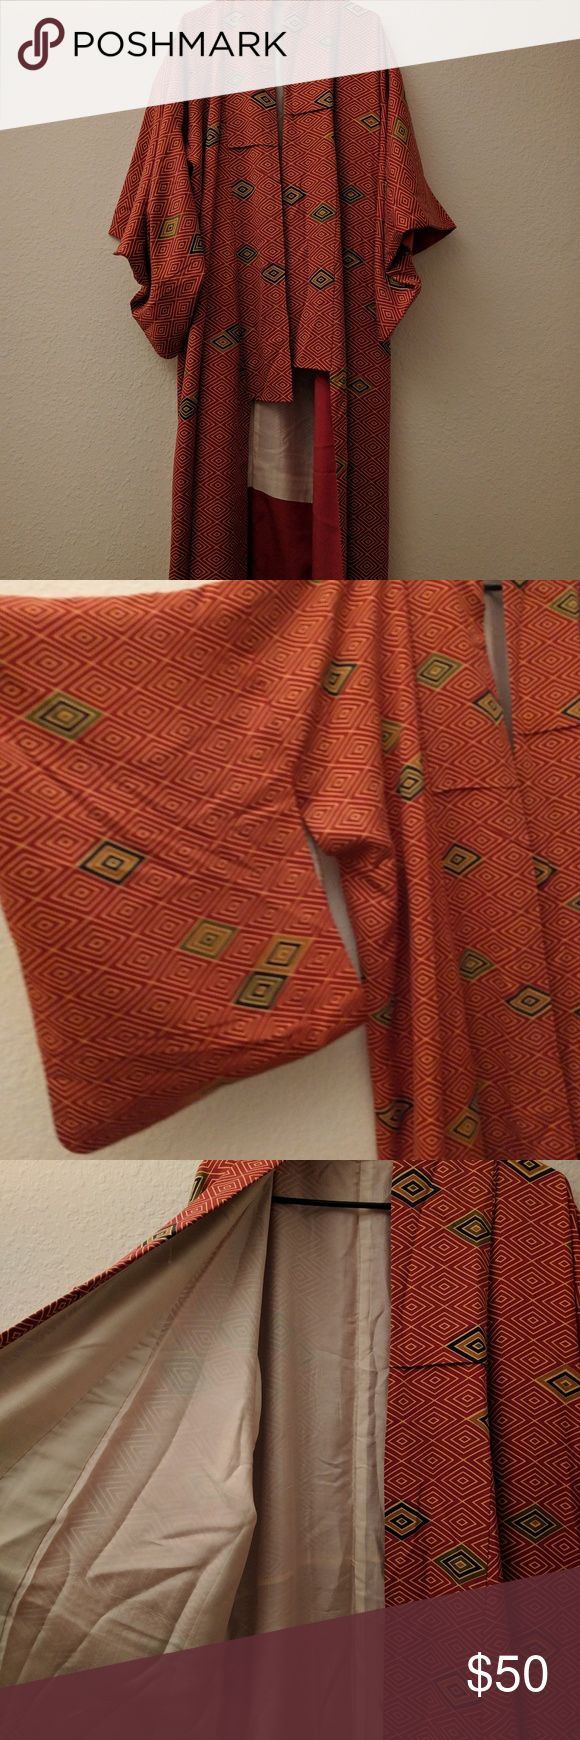 Vintage silk kimono Authentic silk kimono from 1970s Japan! Great for festivals or just lounging around the house! It's floor length (about 56 inches) and in perfect vintage condition with no identifiable flaws. One size fits all. Jackets & Coats